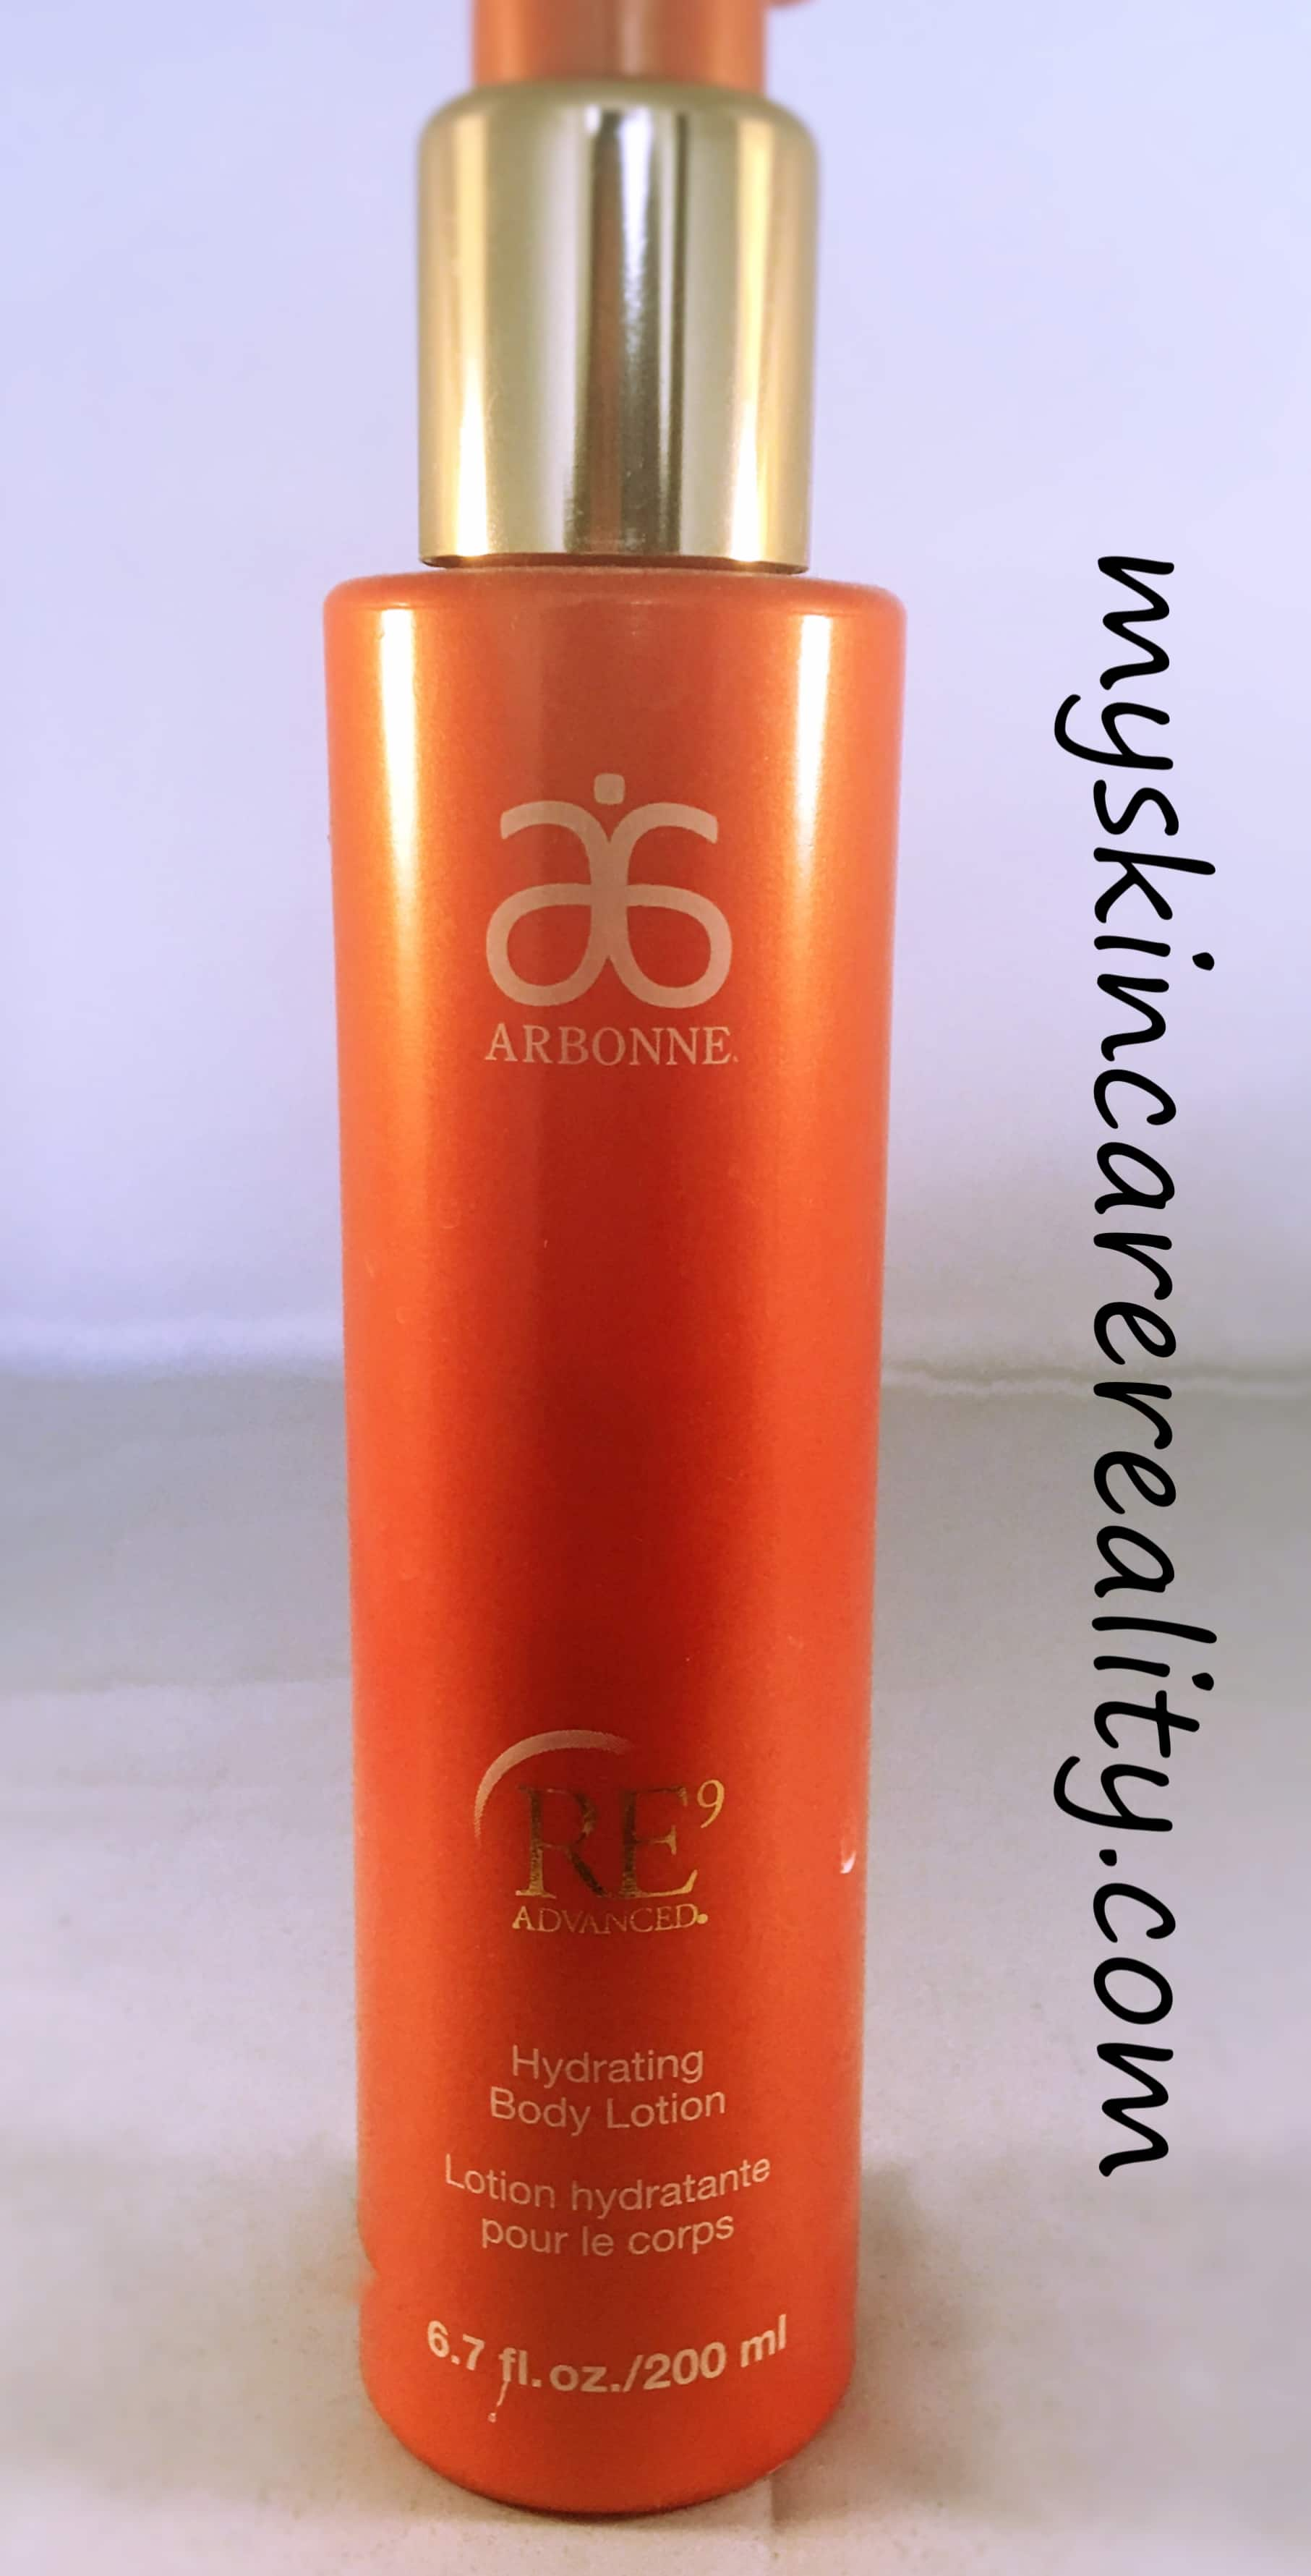 Arbonne RE9 Hydrating Body Lotion Review | Worth the Price?